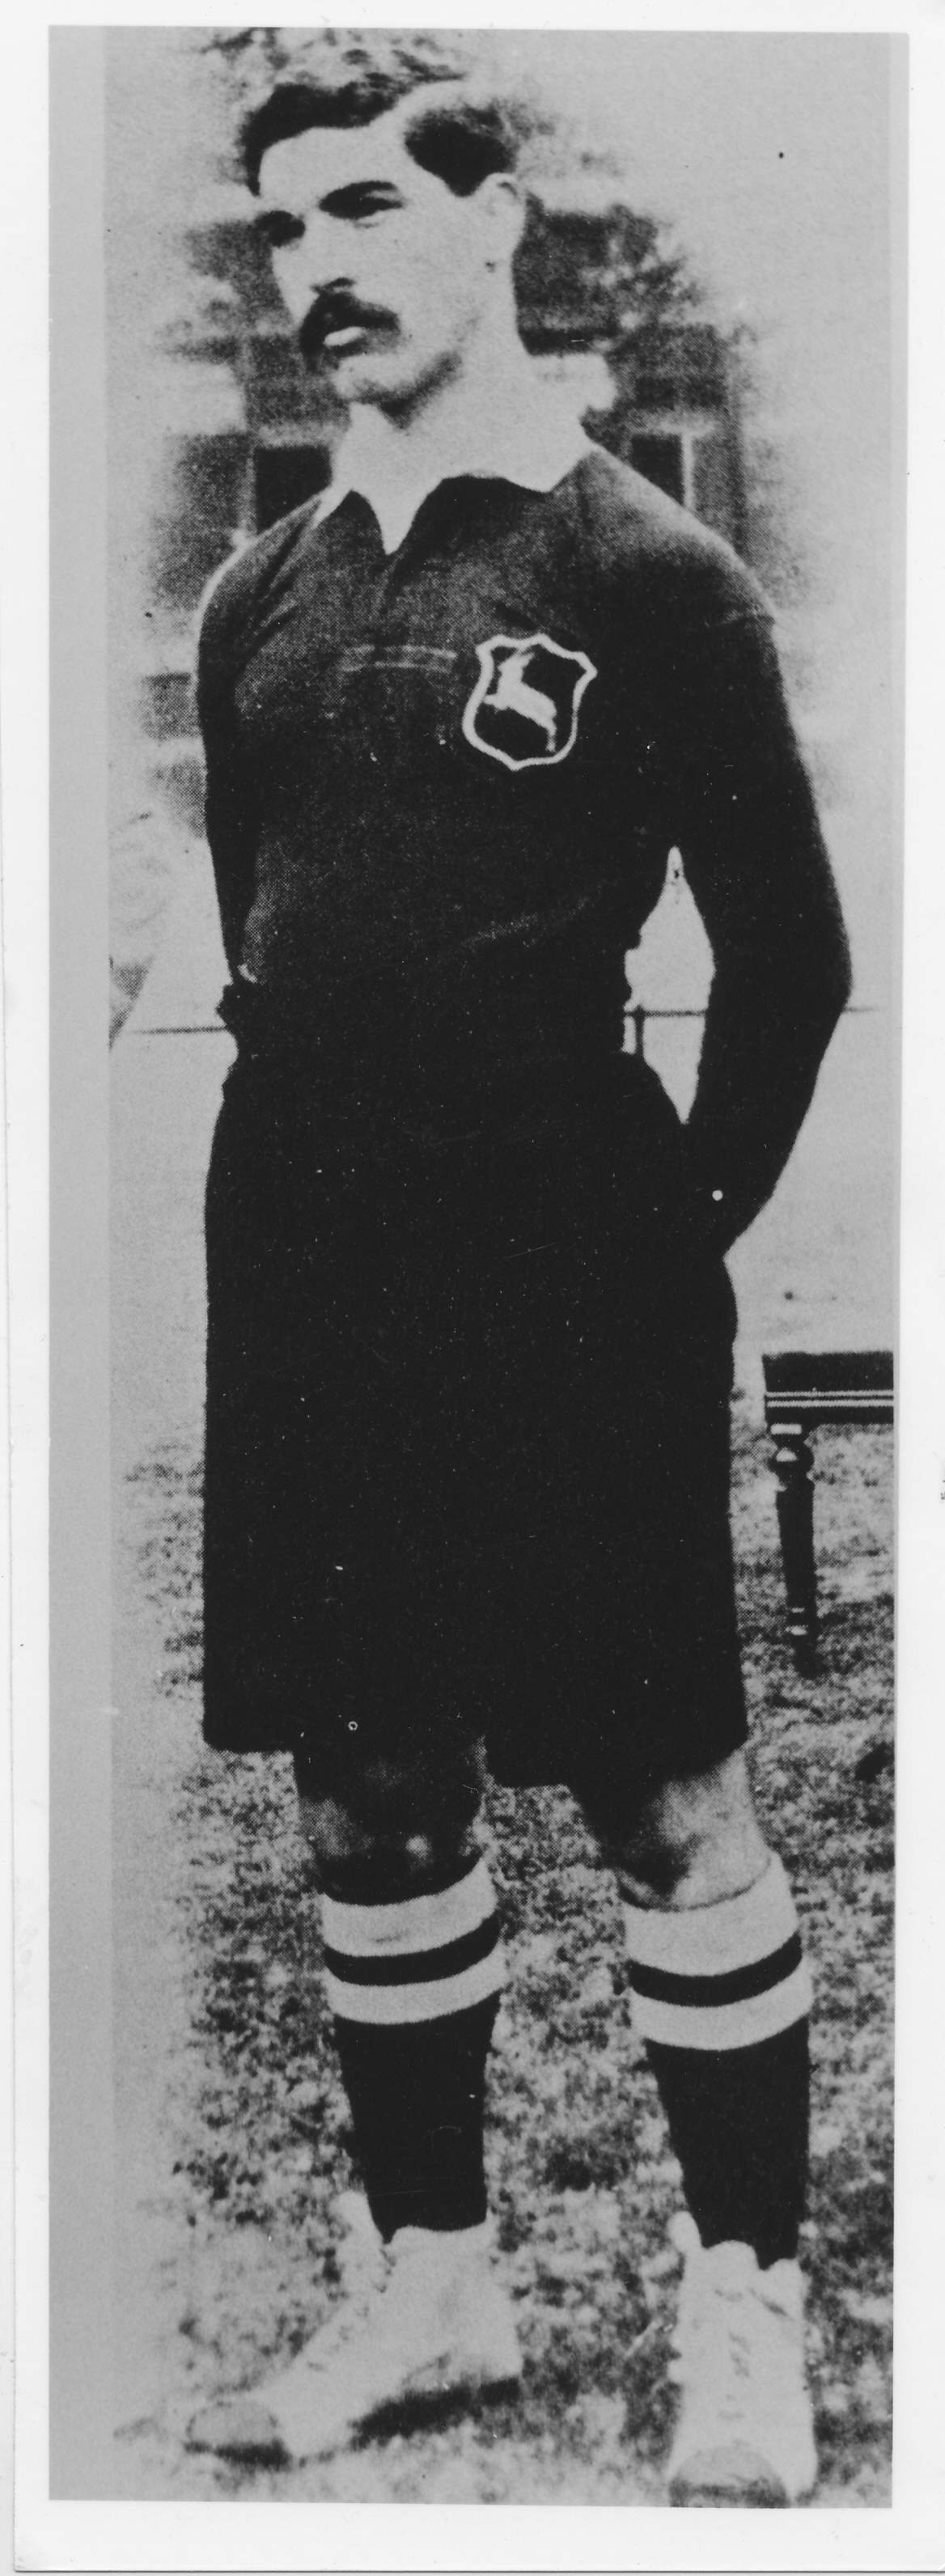 Paul Roos, the first Springbok rugby captain, in 1906. He led a team to Britain four years after the...